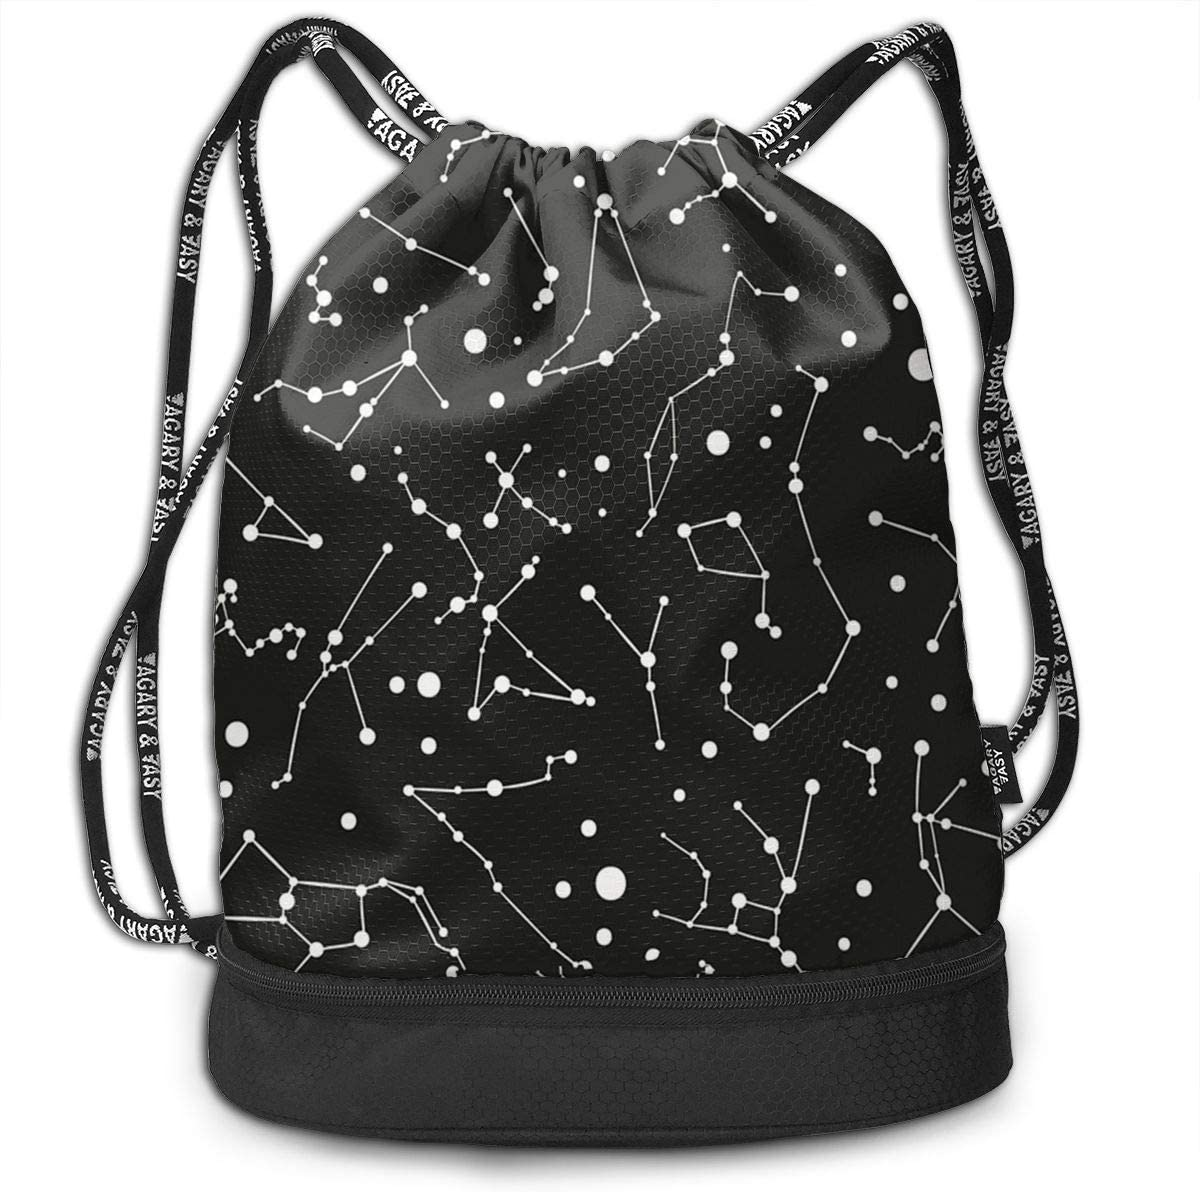 HUOPR5Q Colorful Galaxy Space Moon Star Drawstring Backpack Sport Gym Sack Shoulder Bulk Bag Dance Bag for School Travel